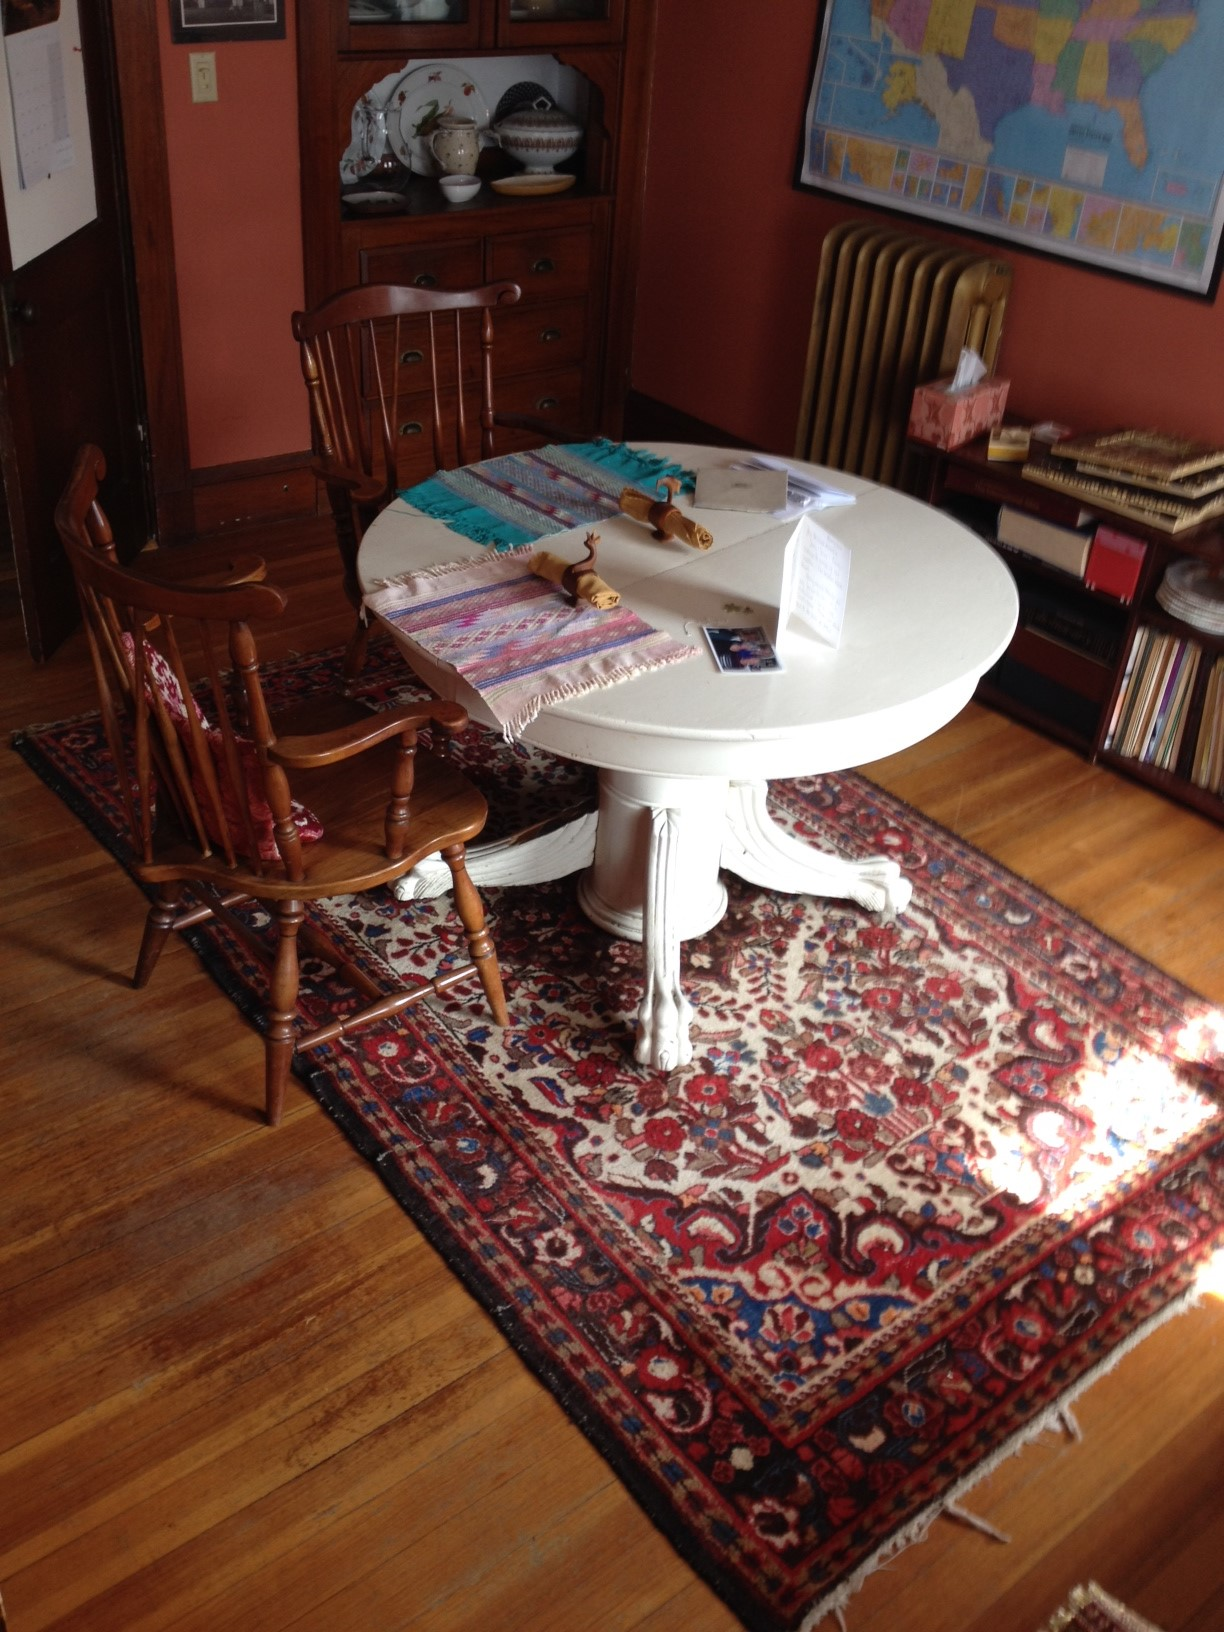 Cream-colored table on dark red rug with two feet of wood floor around the rug to give clear access to the kitchen and hall